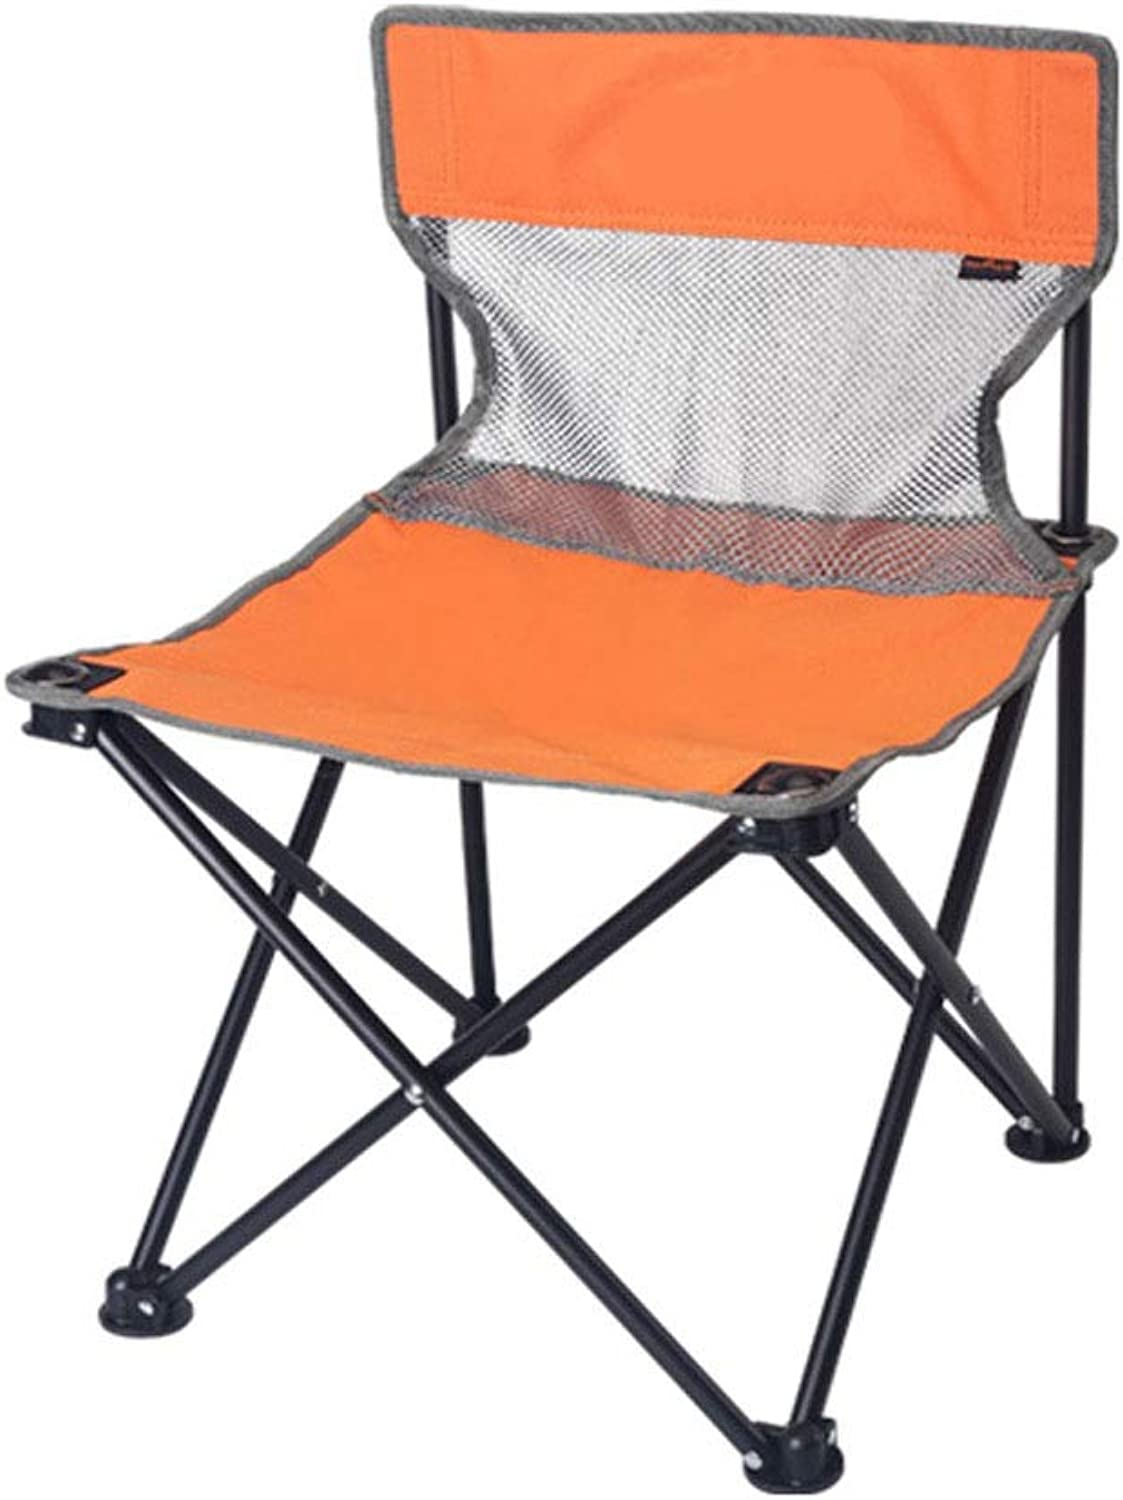 LNYJ Outdoor Portable Folding Chair Detachable Home Indoor Chair Camping Picnic Stool Beach Fishing Chair Light Weight Bearing Strong Oxford mazza (color   orange, Size   Small)